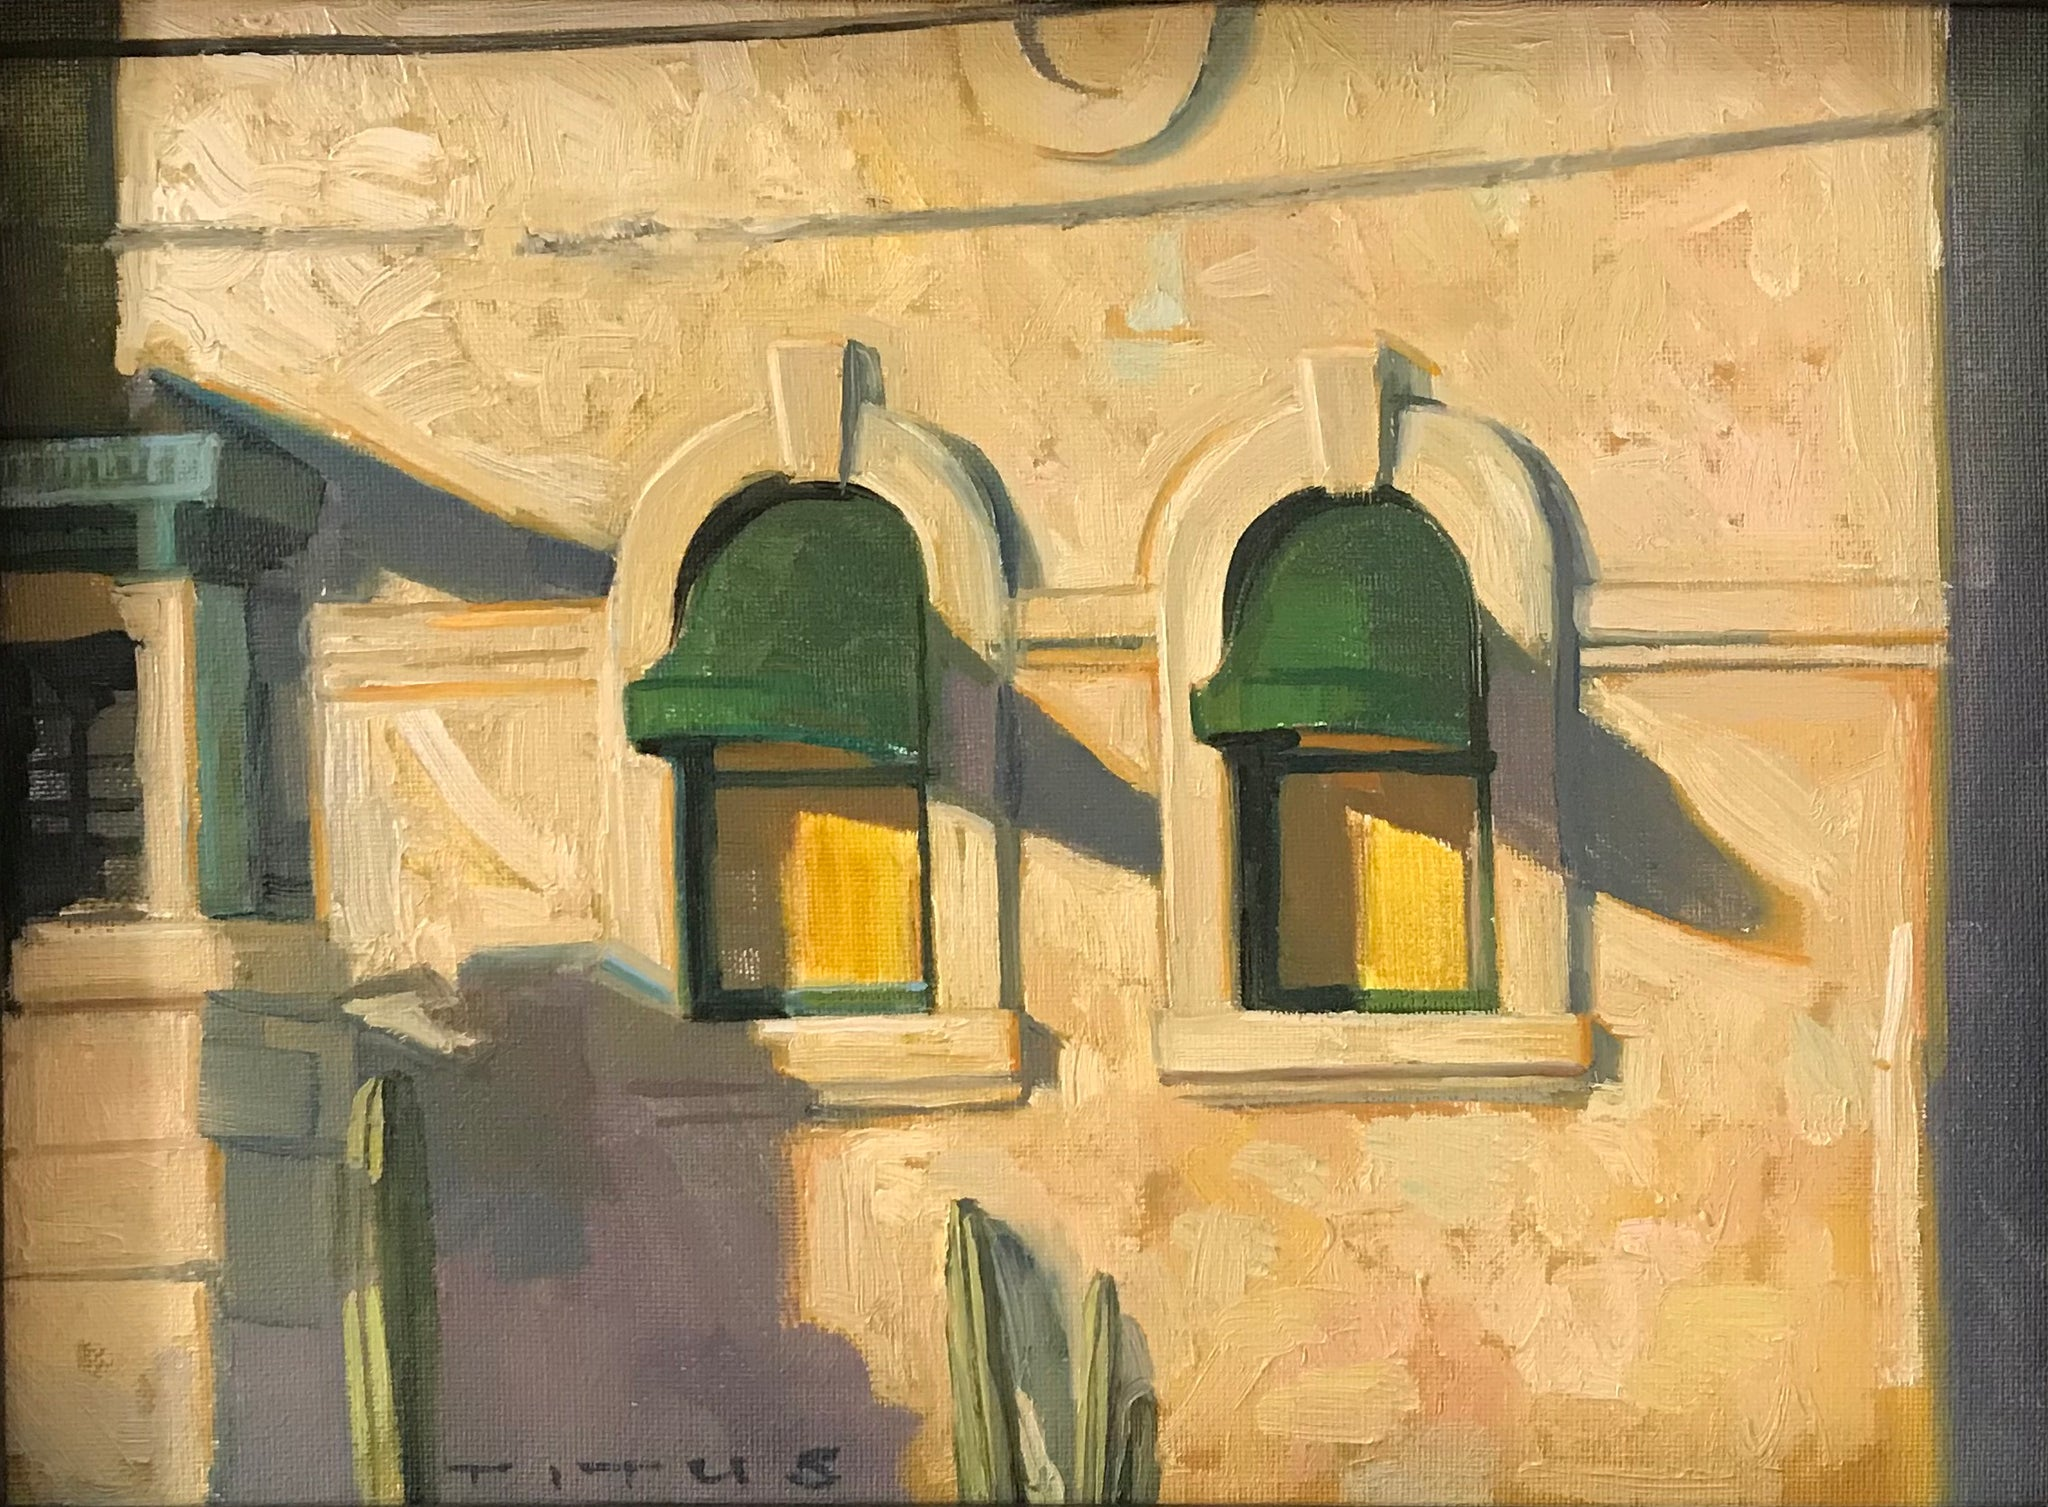 Two windows (12x9 inches, framed)